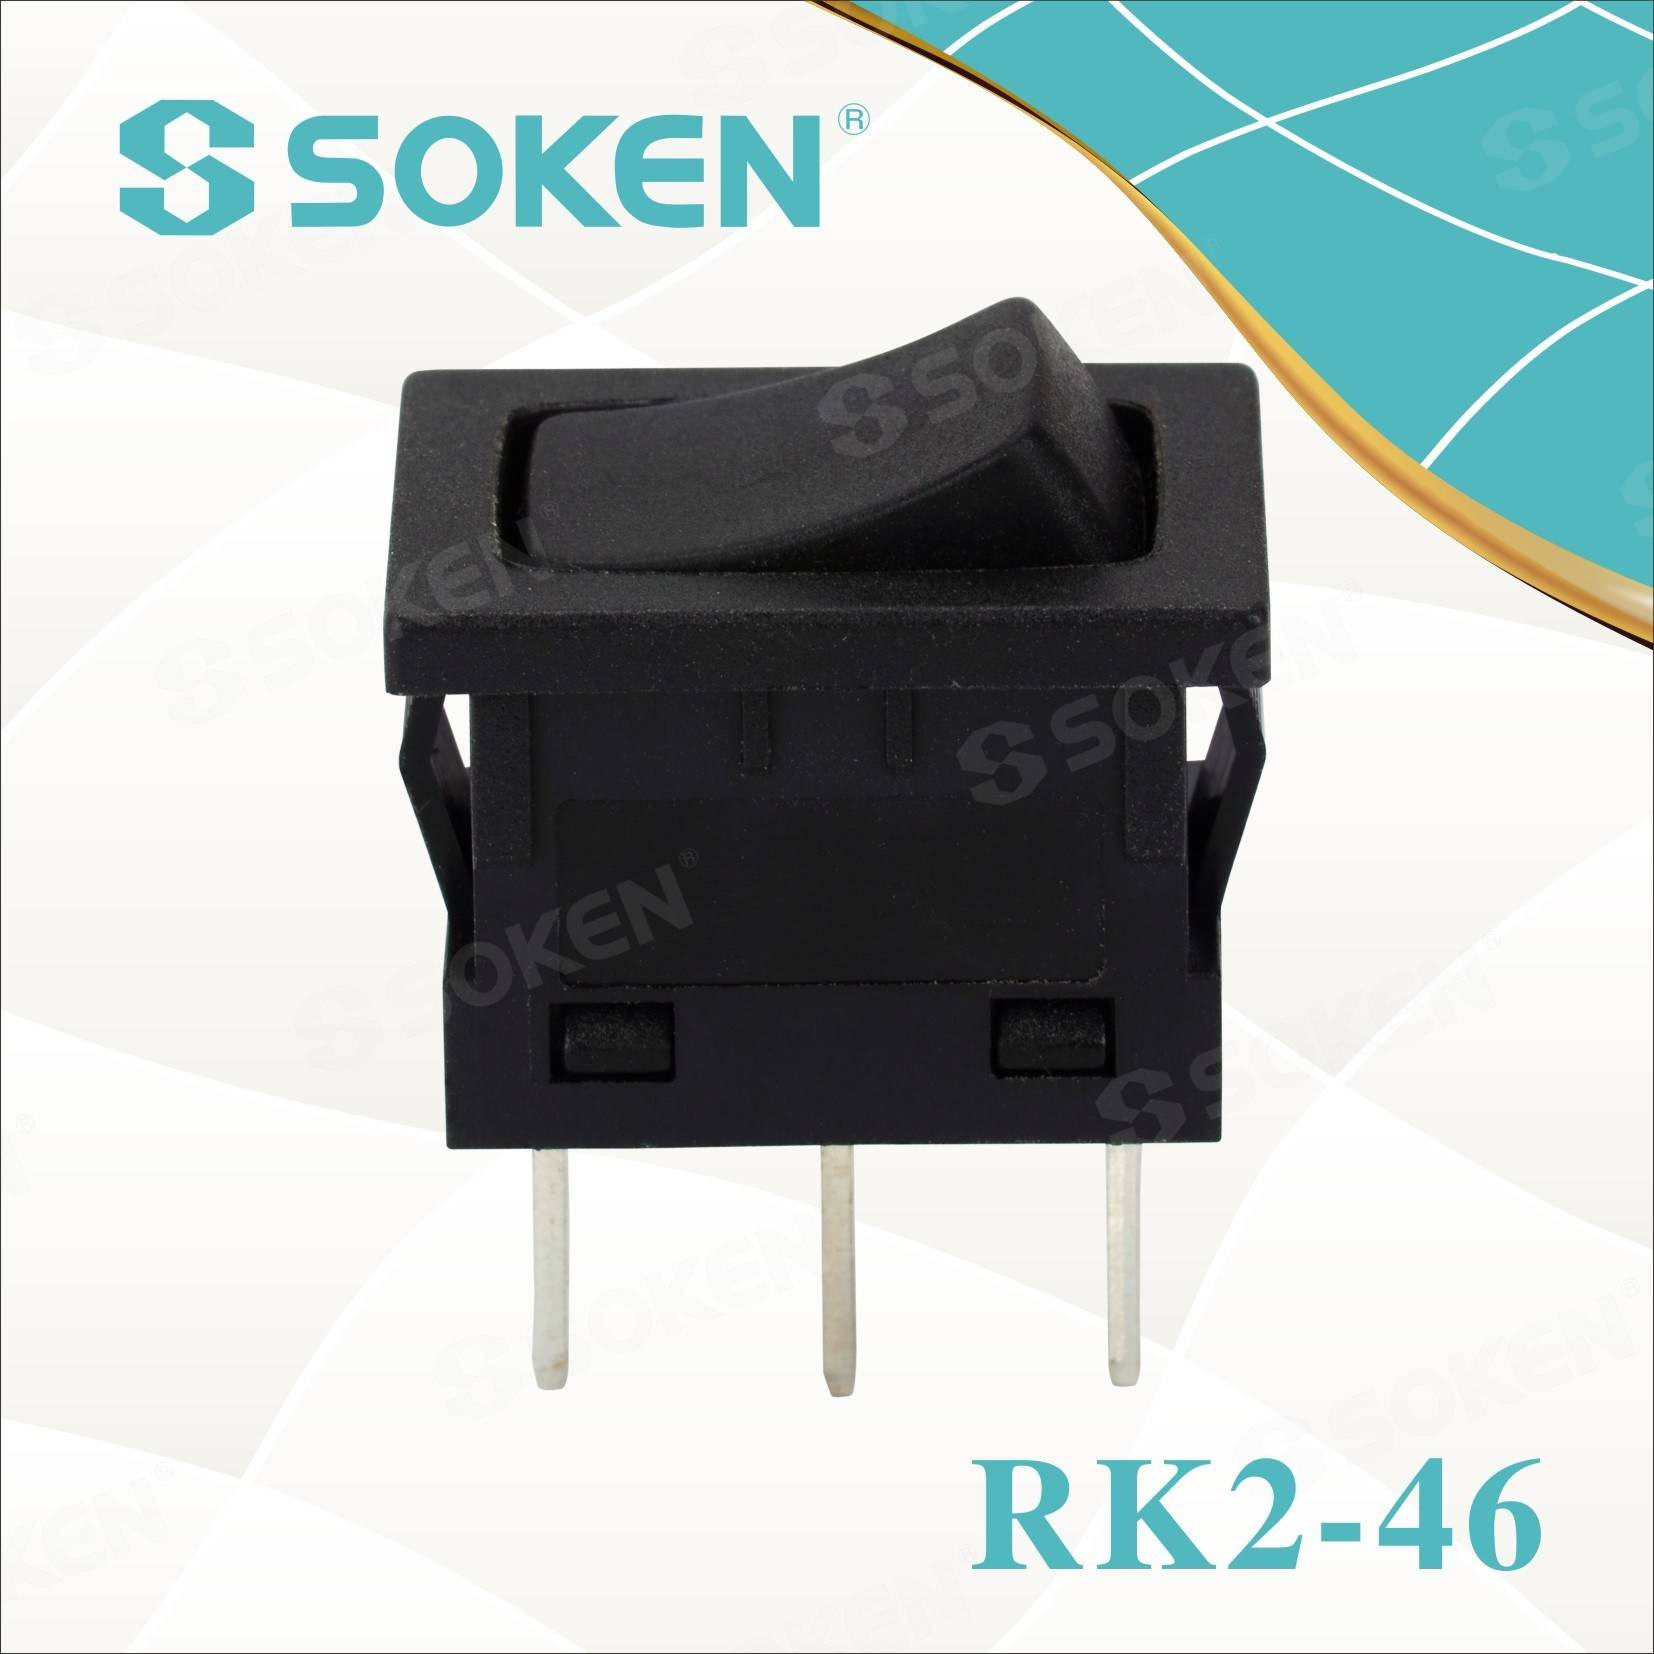 Hot Selling for Electric Oven Parts -